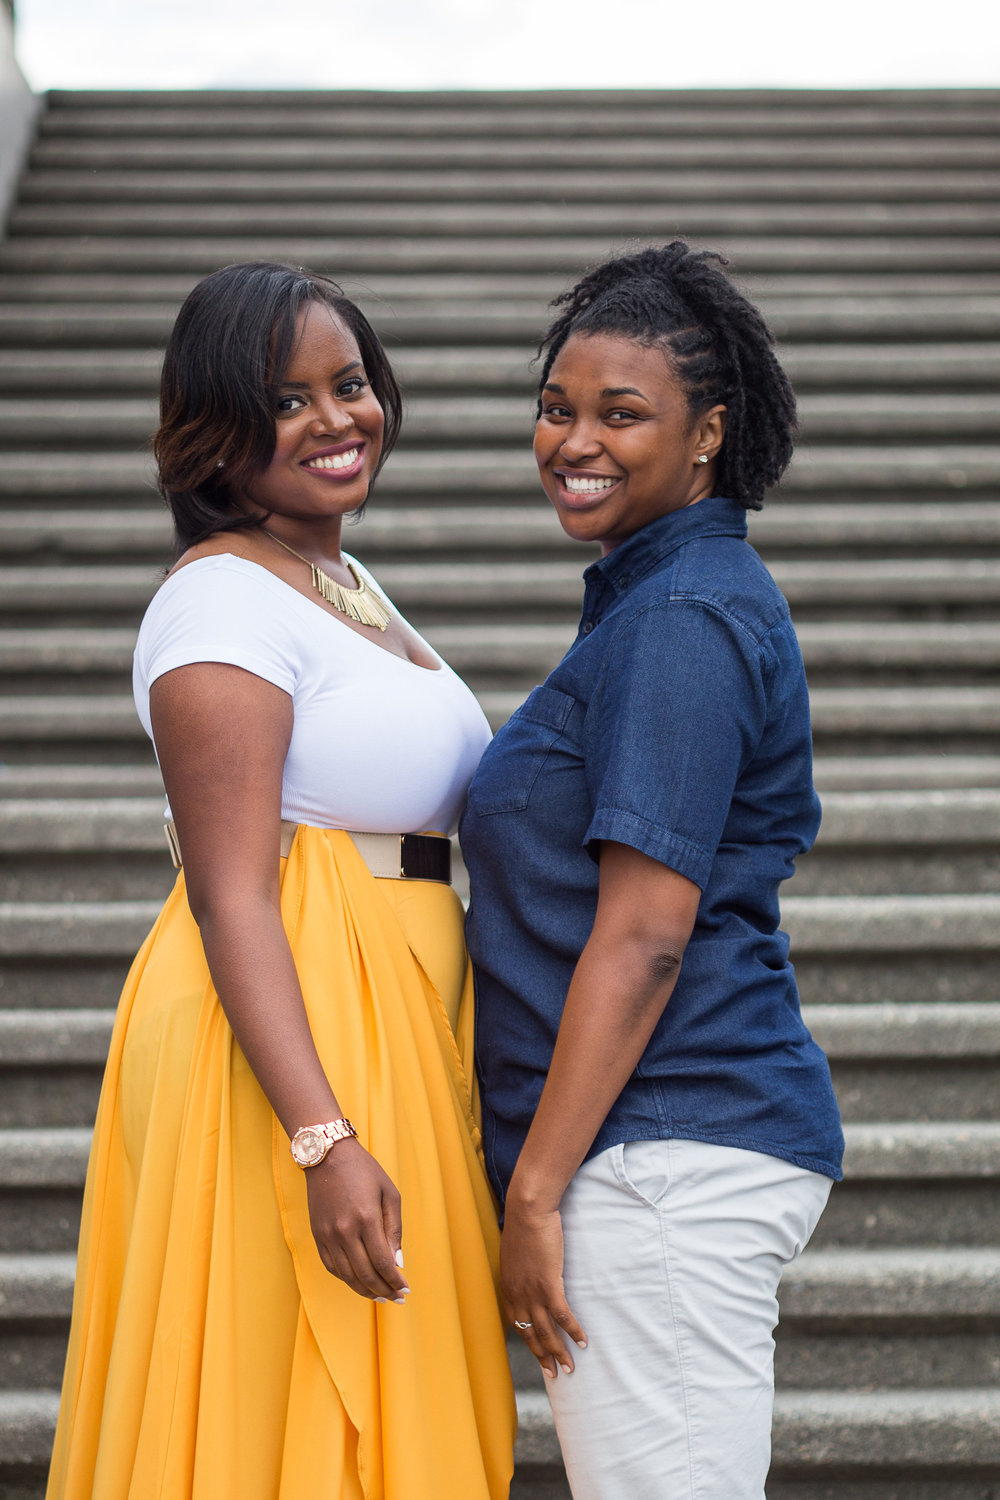 Taymah and Brittany standing together in Gas Works Park, Seattle - Photo by DBK Photography